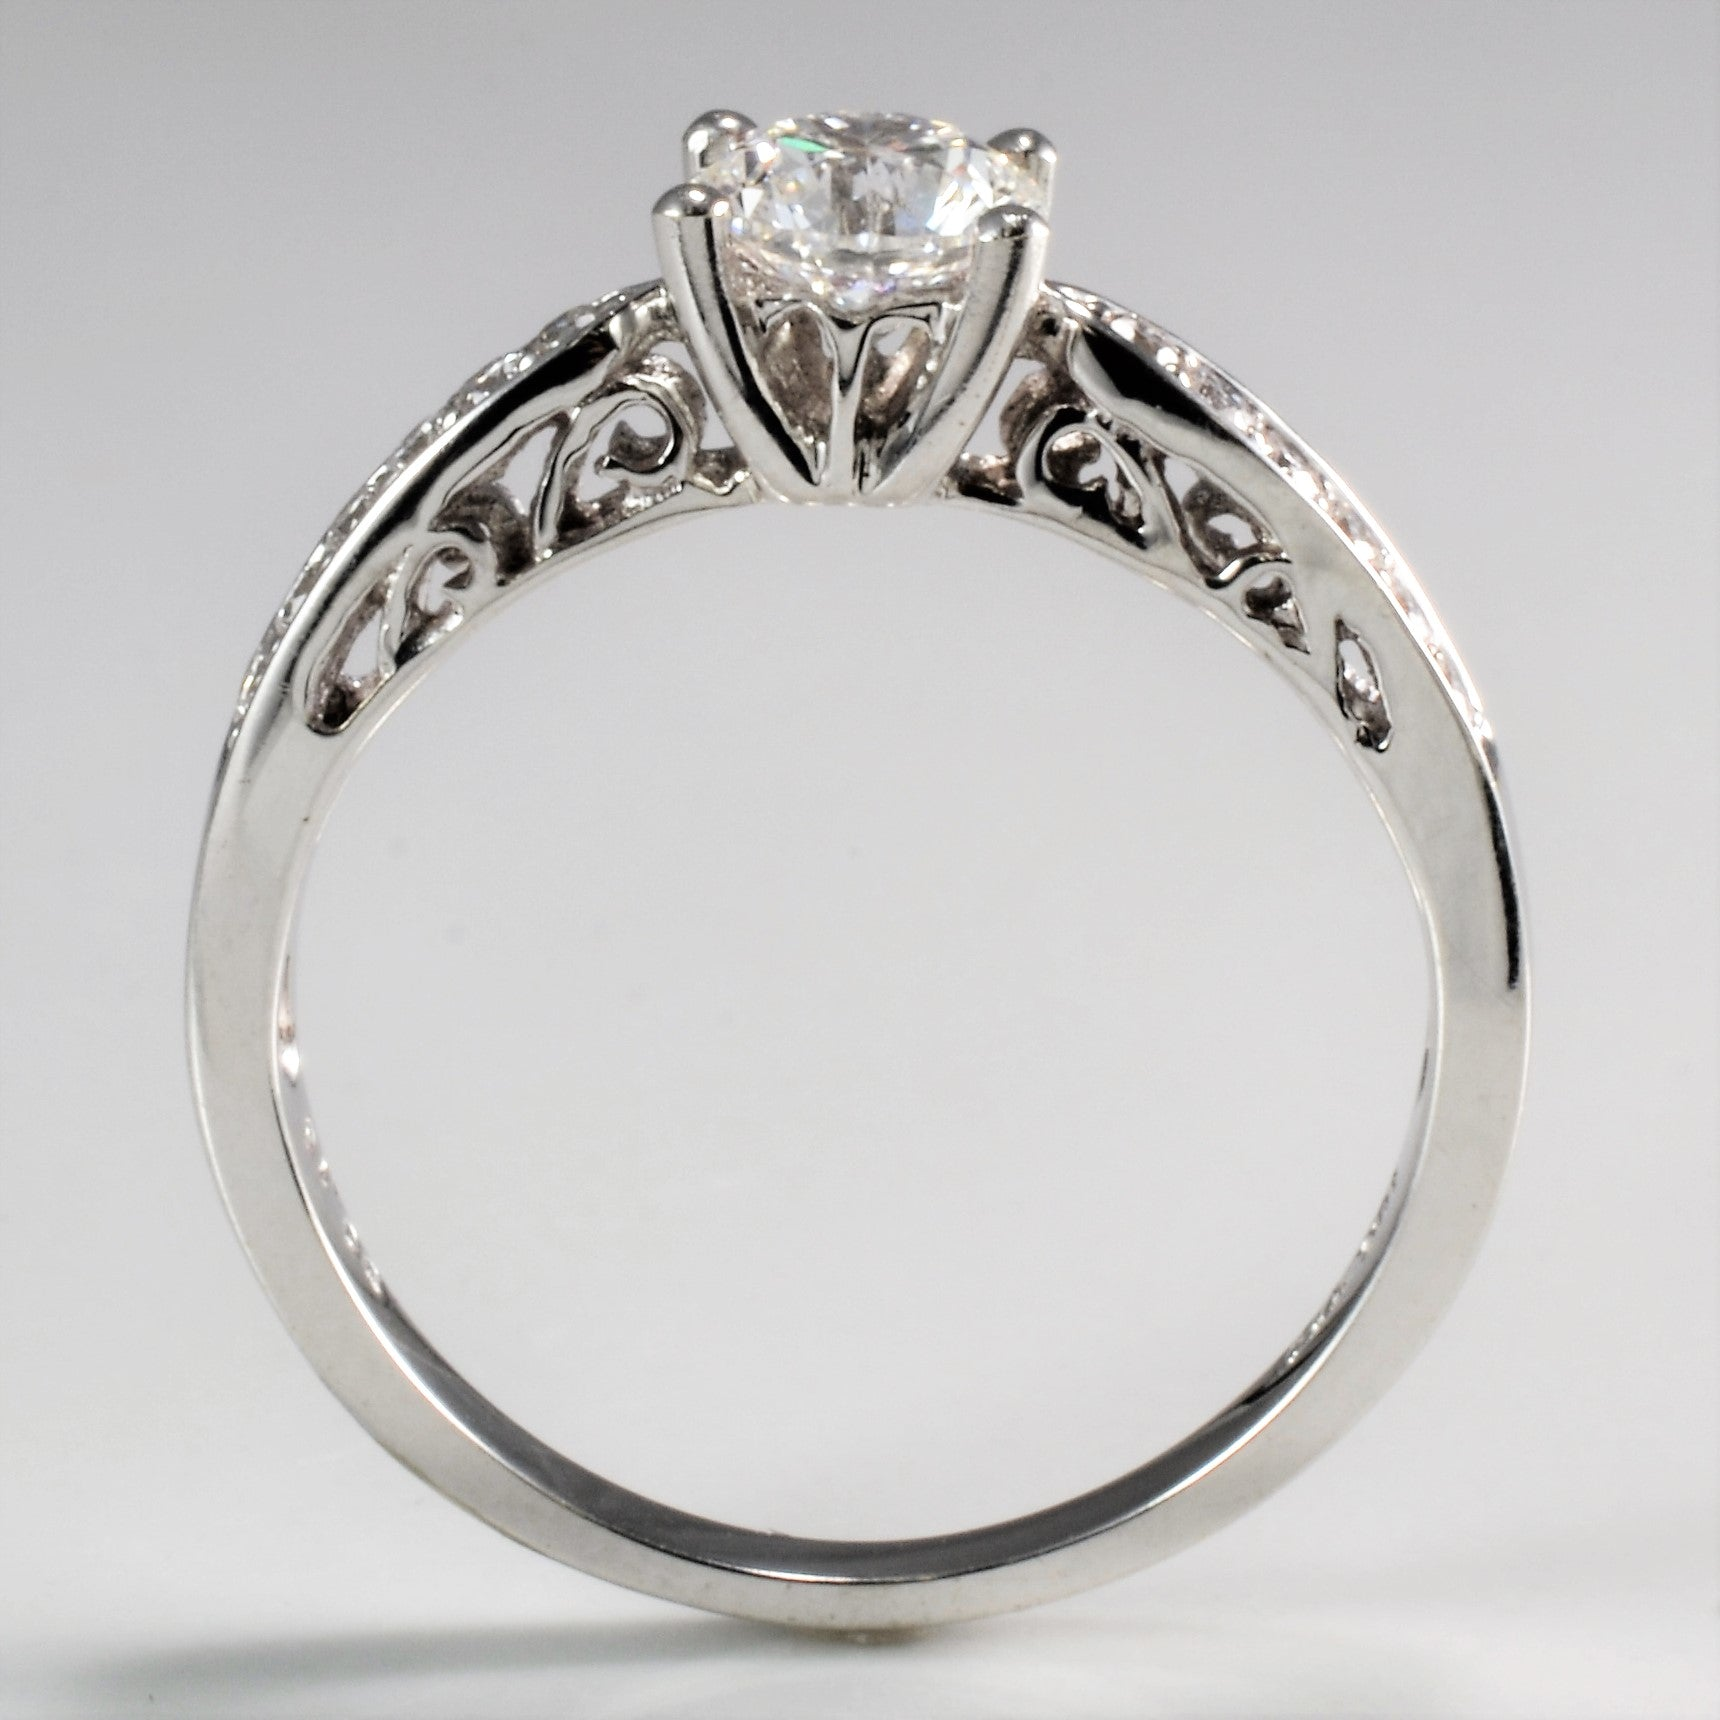 Solitaire & Channel Accents Diamond Engagement Ring | 0.73 ctw, SZ 7 |